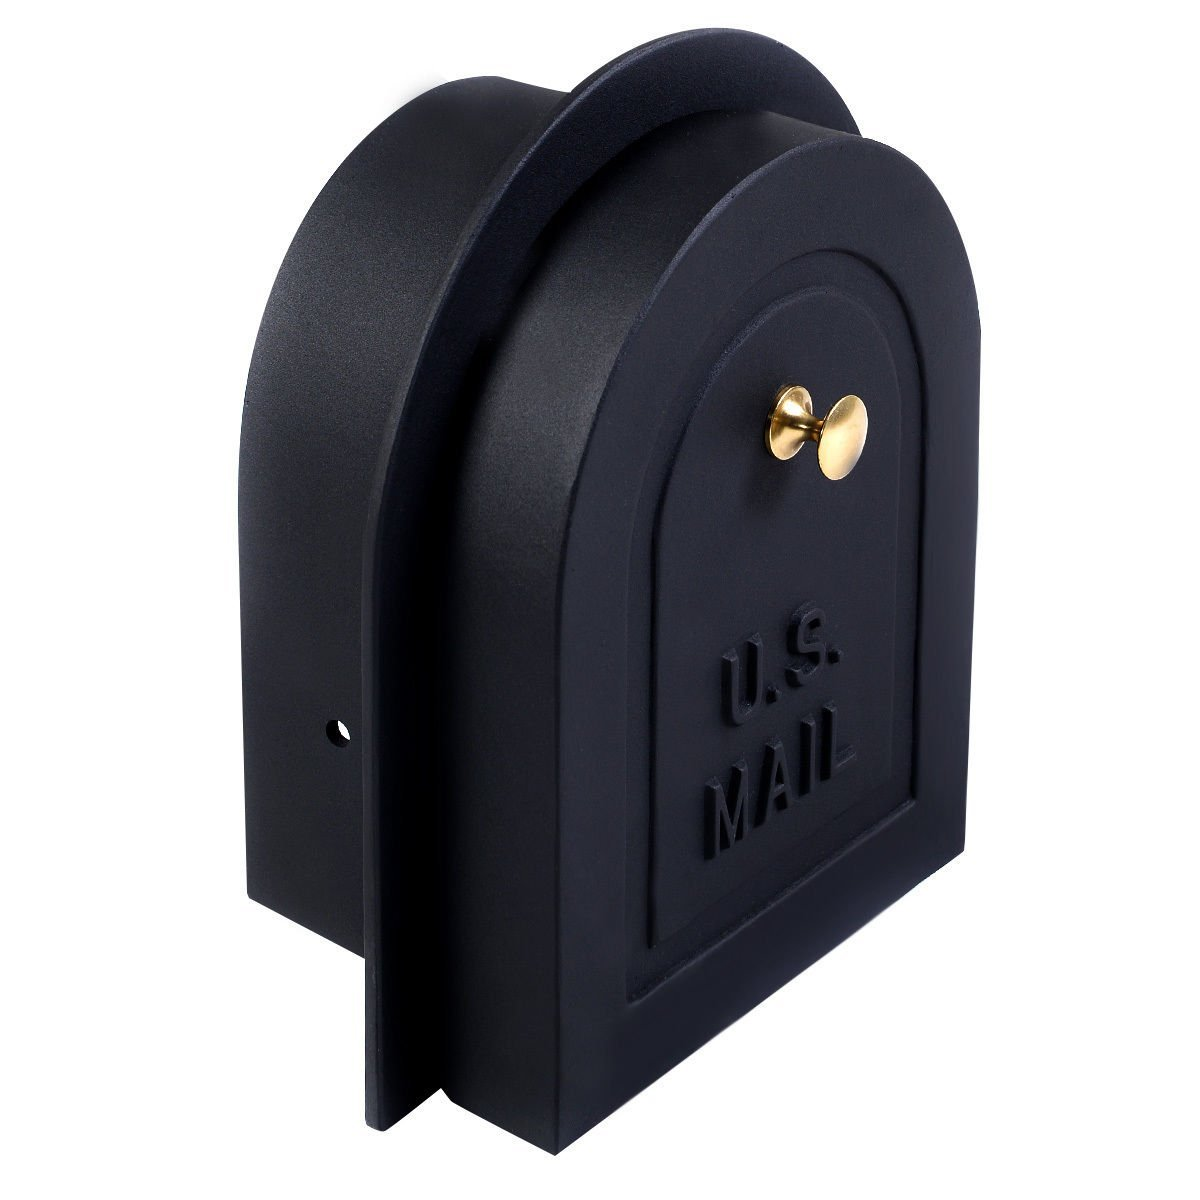 Cheap Cast Stone Mailbox Post Find Cast Stone Mailbox Post Deals On Line At Alibaba Com